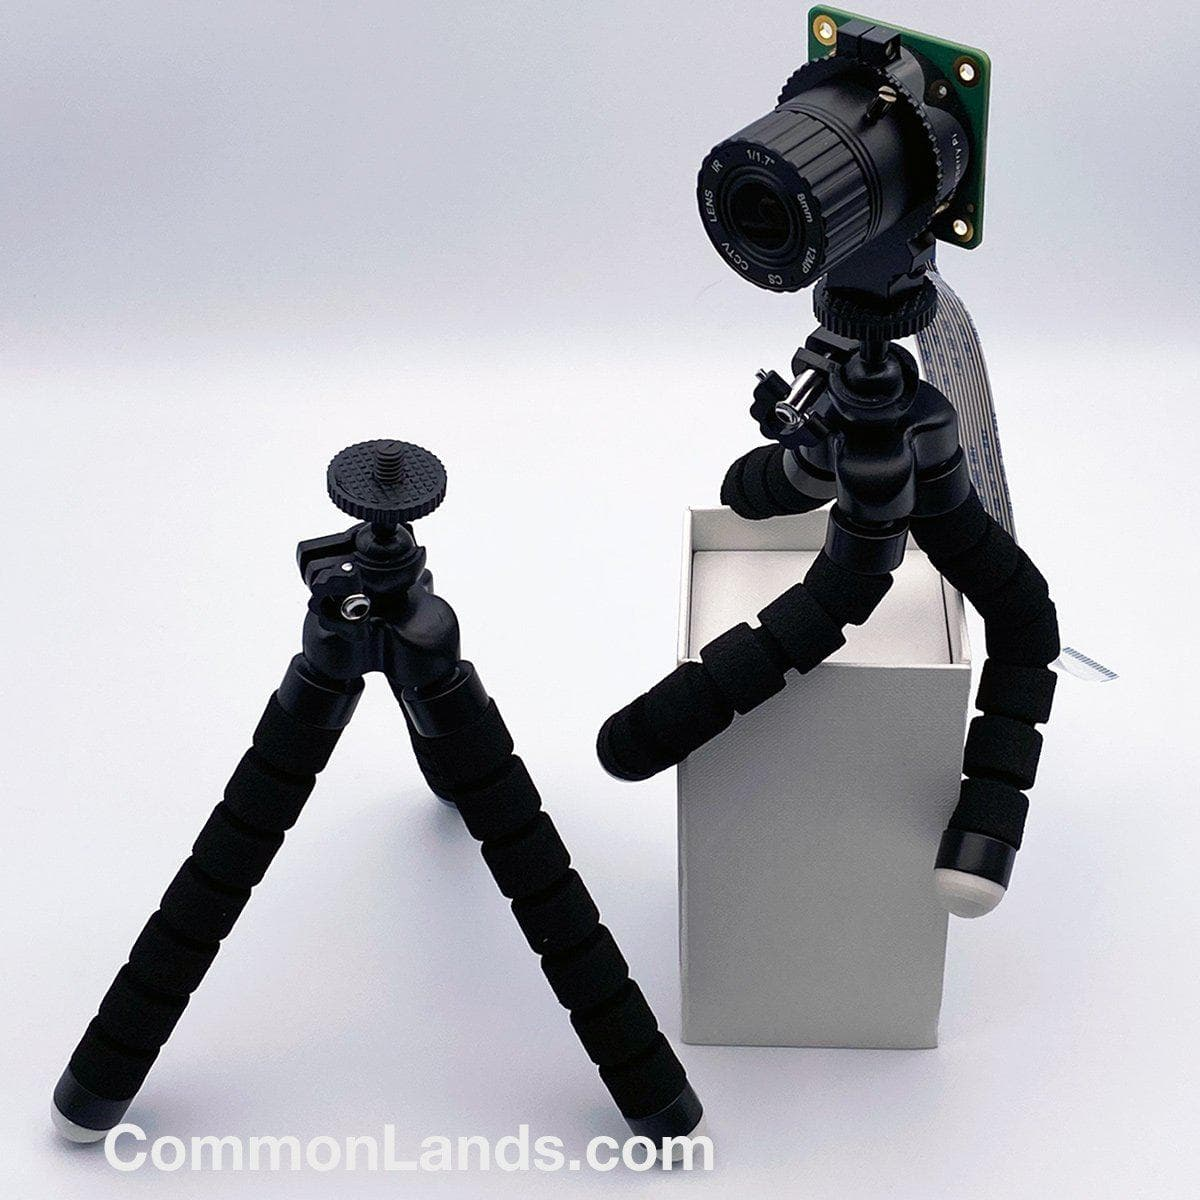 A versatile camera mounting tripod pictured on top of a box.